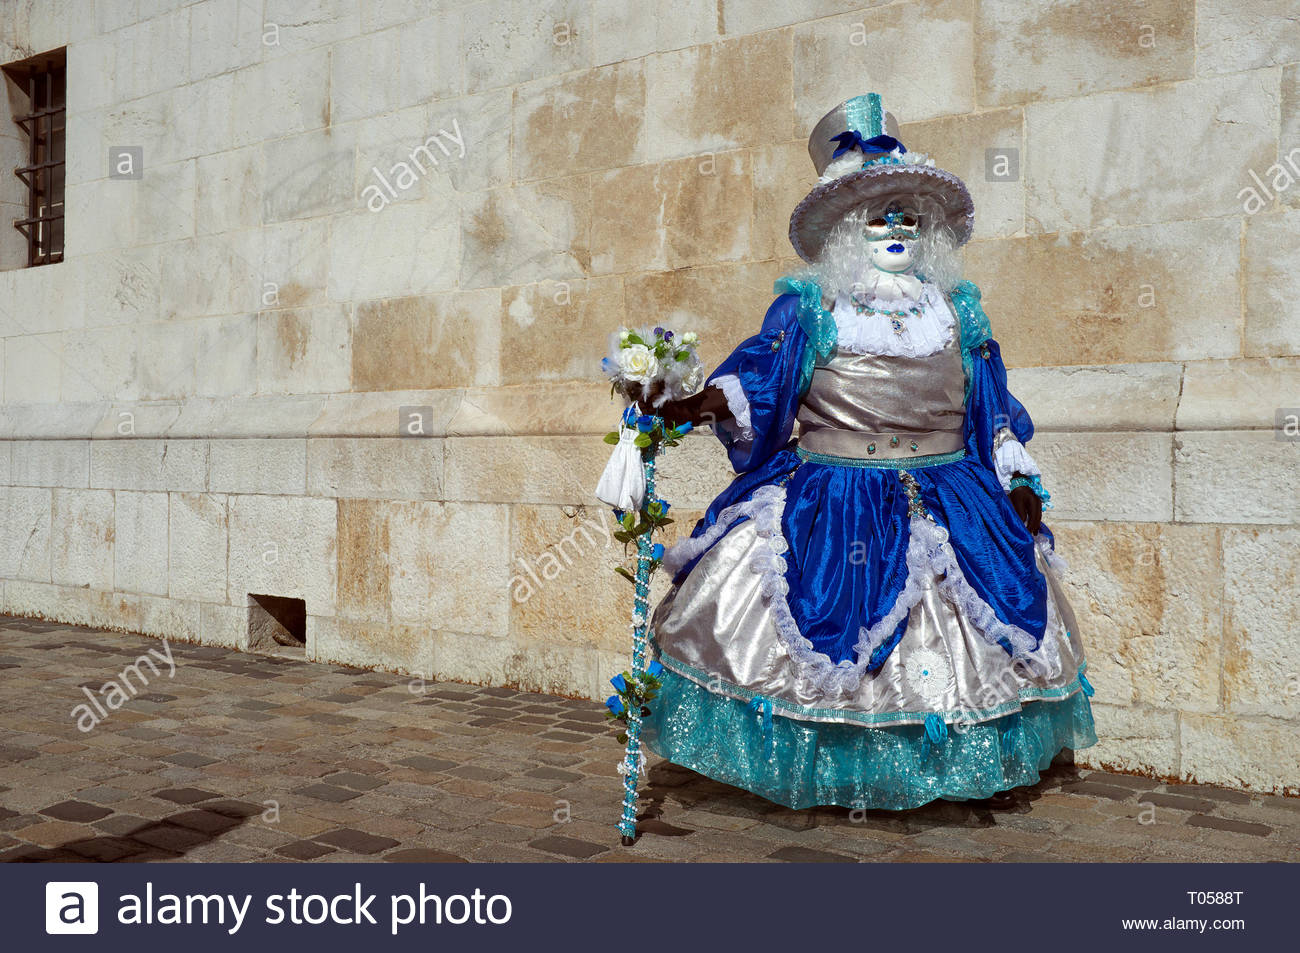 A participant at the Annecy Venetian Carnival. Annecy. Auvergne-Rhone-Alpes, south east France. Stock Photo